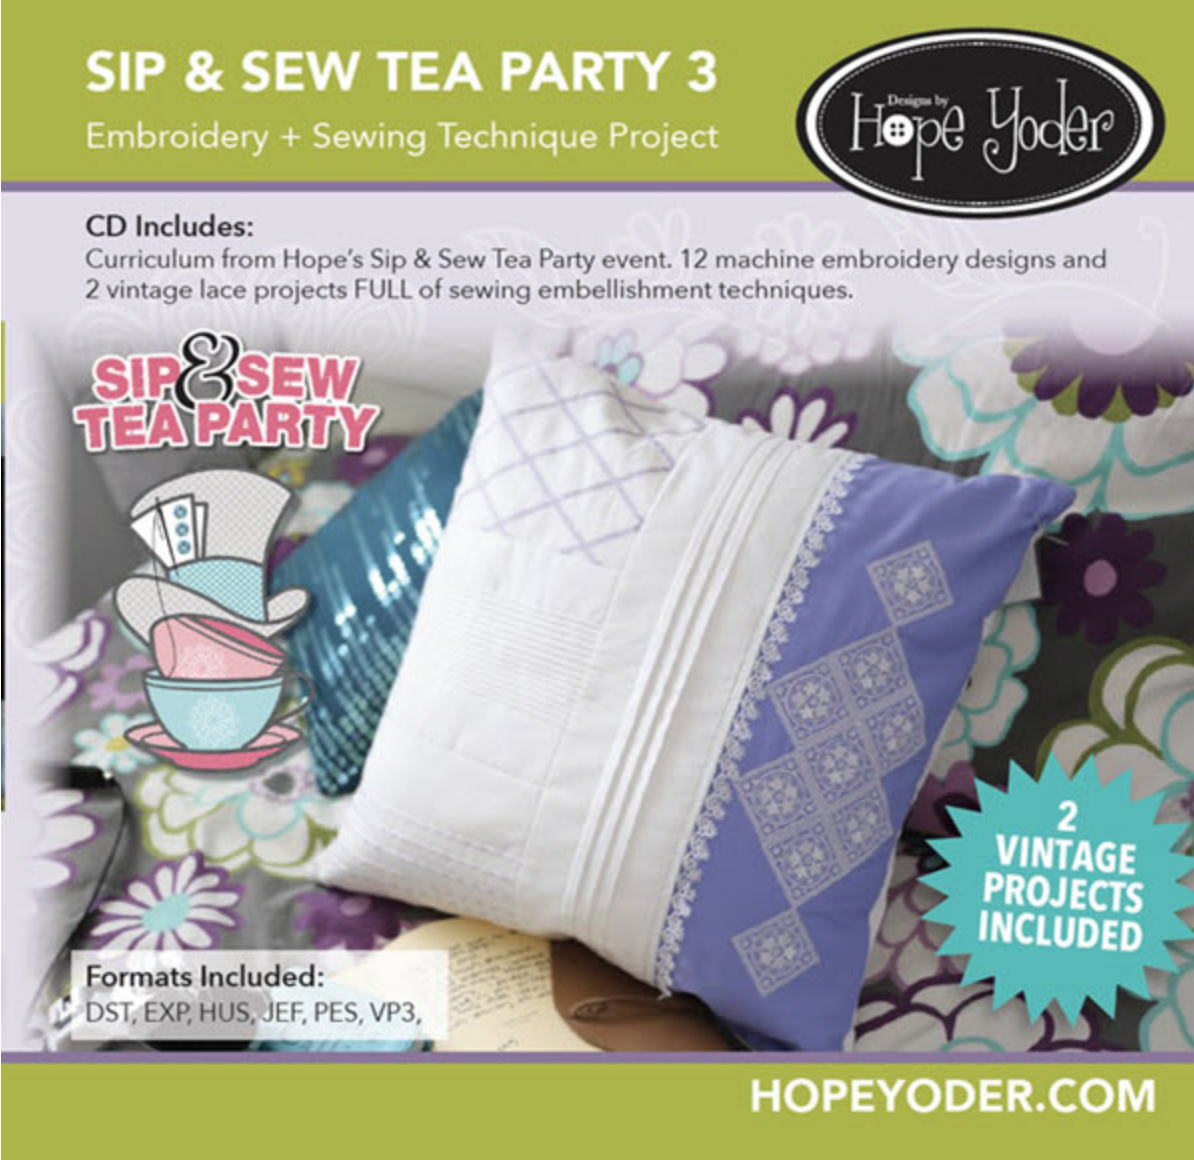 Hope Yoder Sip & Sew Tea Party 3